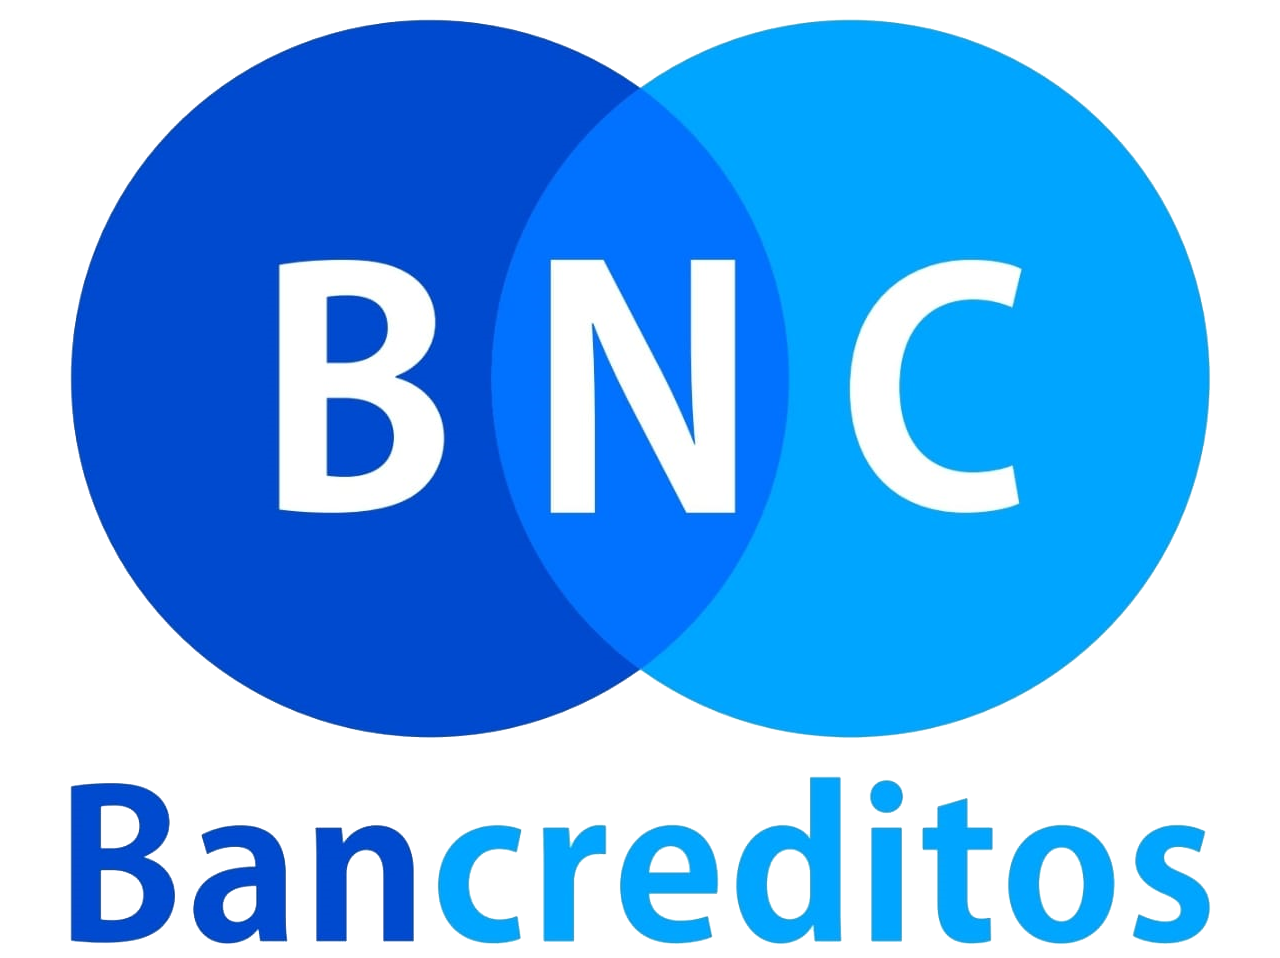 Bancreditos